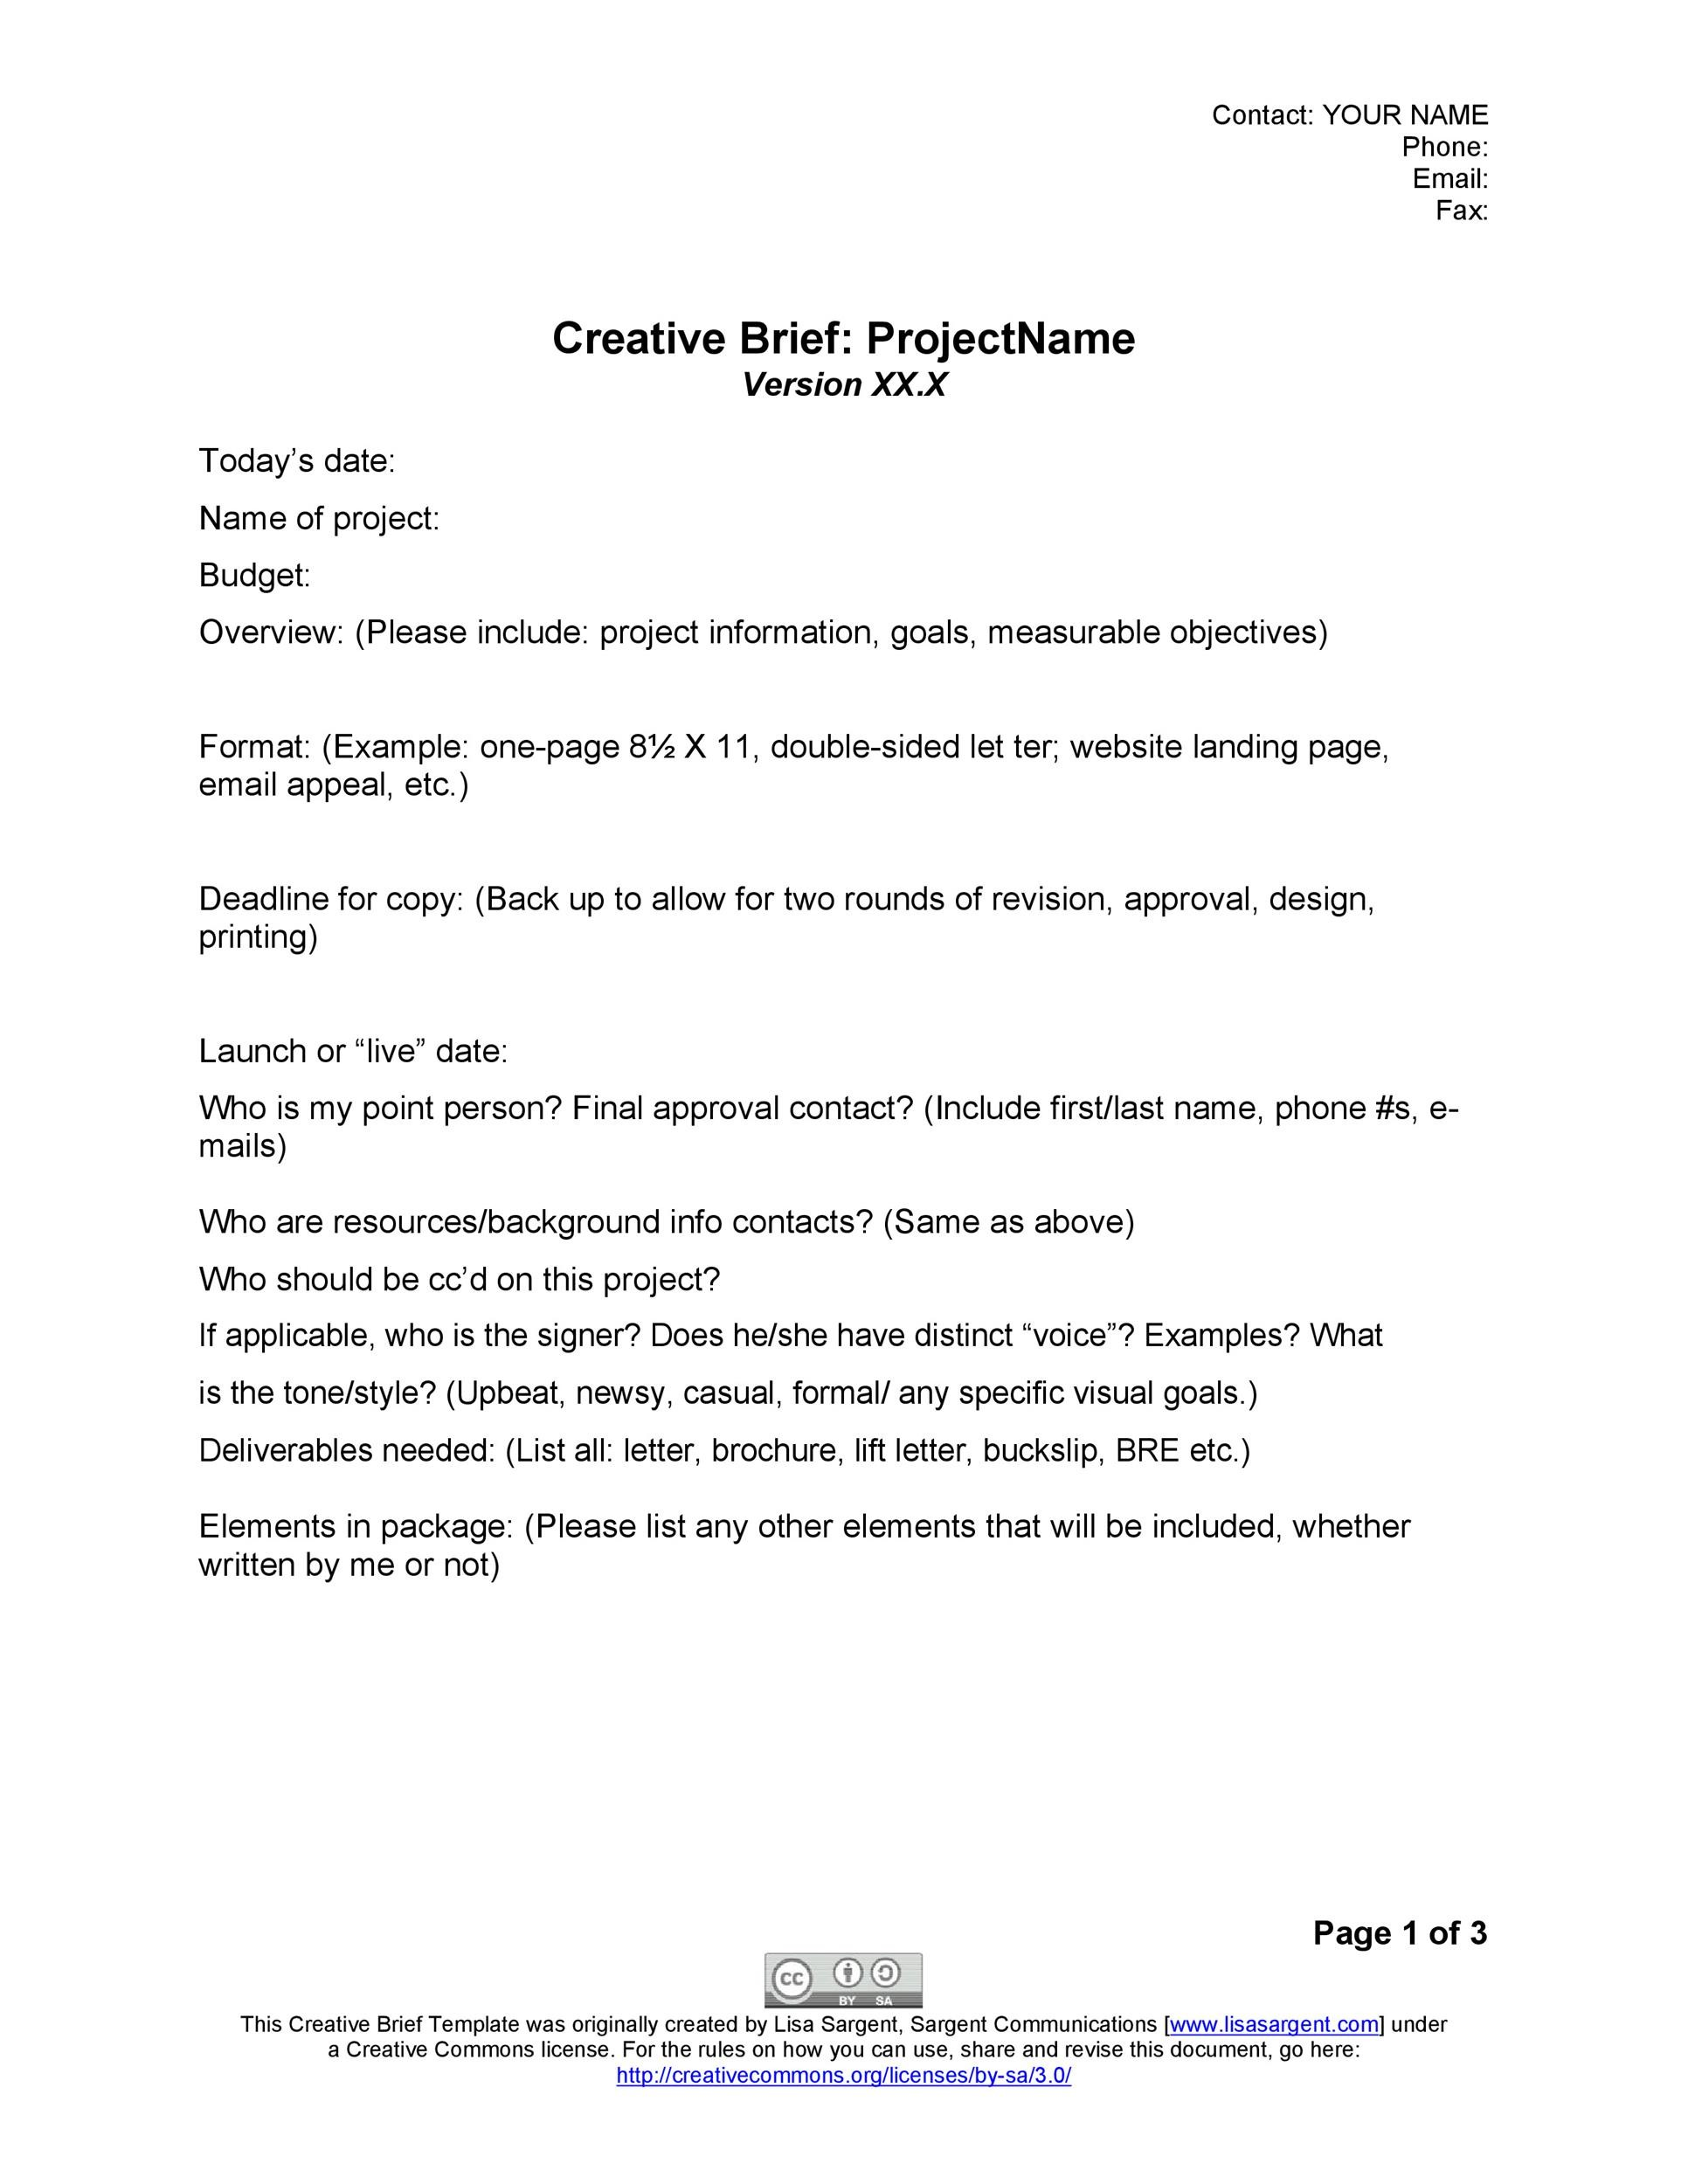 Free Creative Brief Template 33